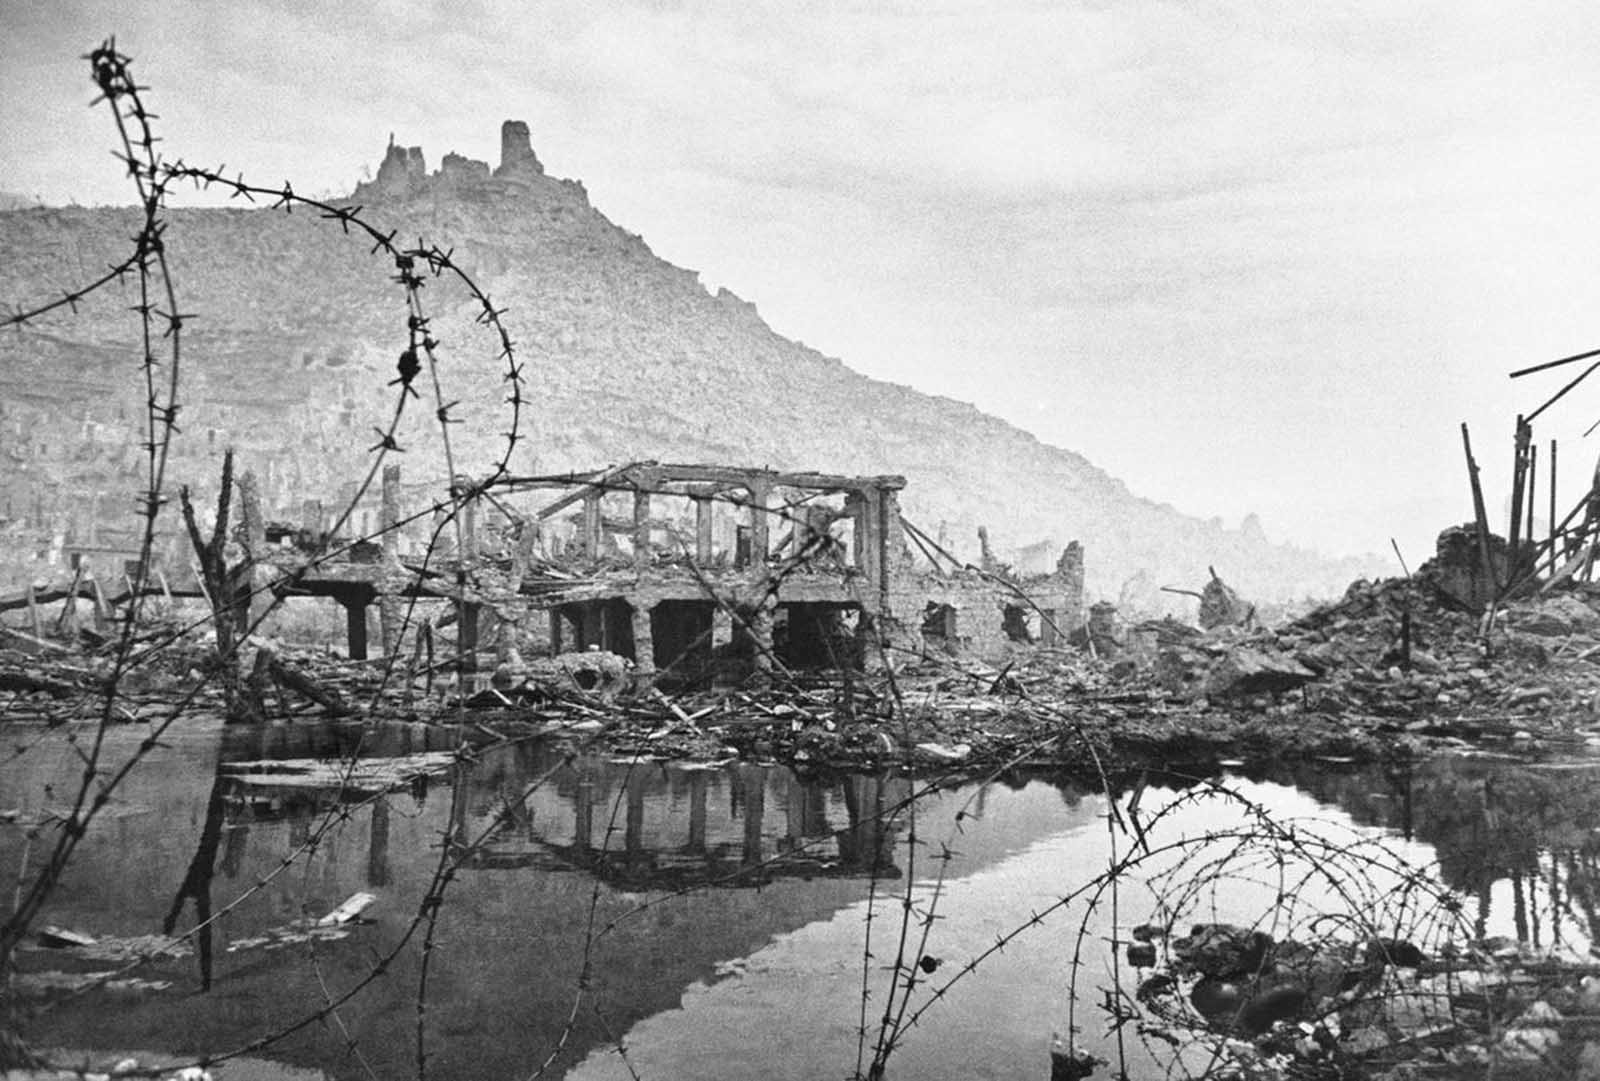 Desolation in the Italian city of Cassino in May of 1944, the day after the city's capture by the Allies. Hangman's Hill is shown in the background, scene of bitter fighting during the long and bitter siege of the stronghold.